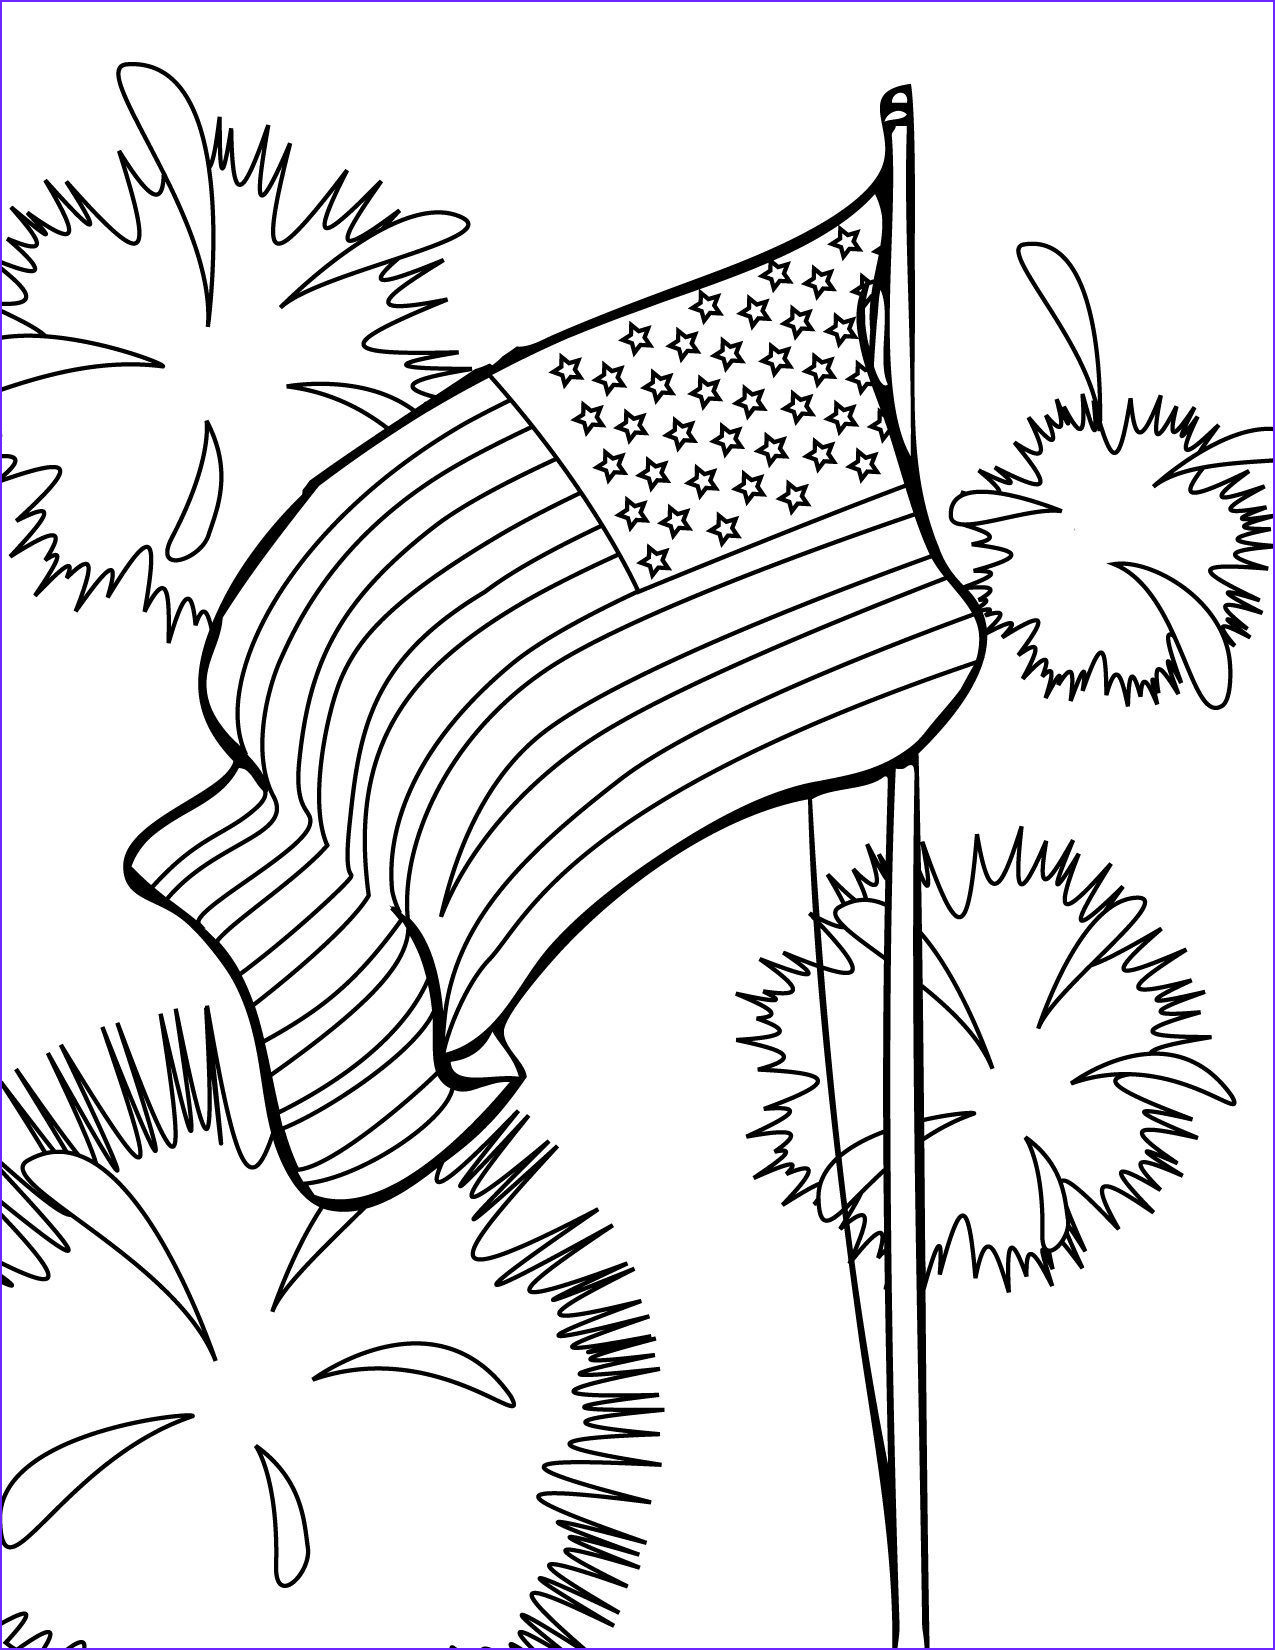 Coloring Page Flags Inspirational Collection American Flag Coloring Pages Best Coloring Pages for Kids